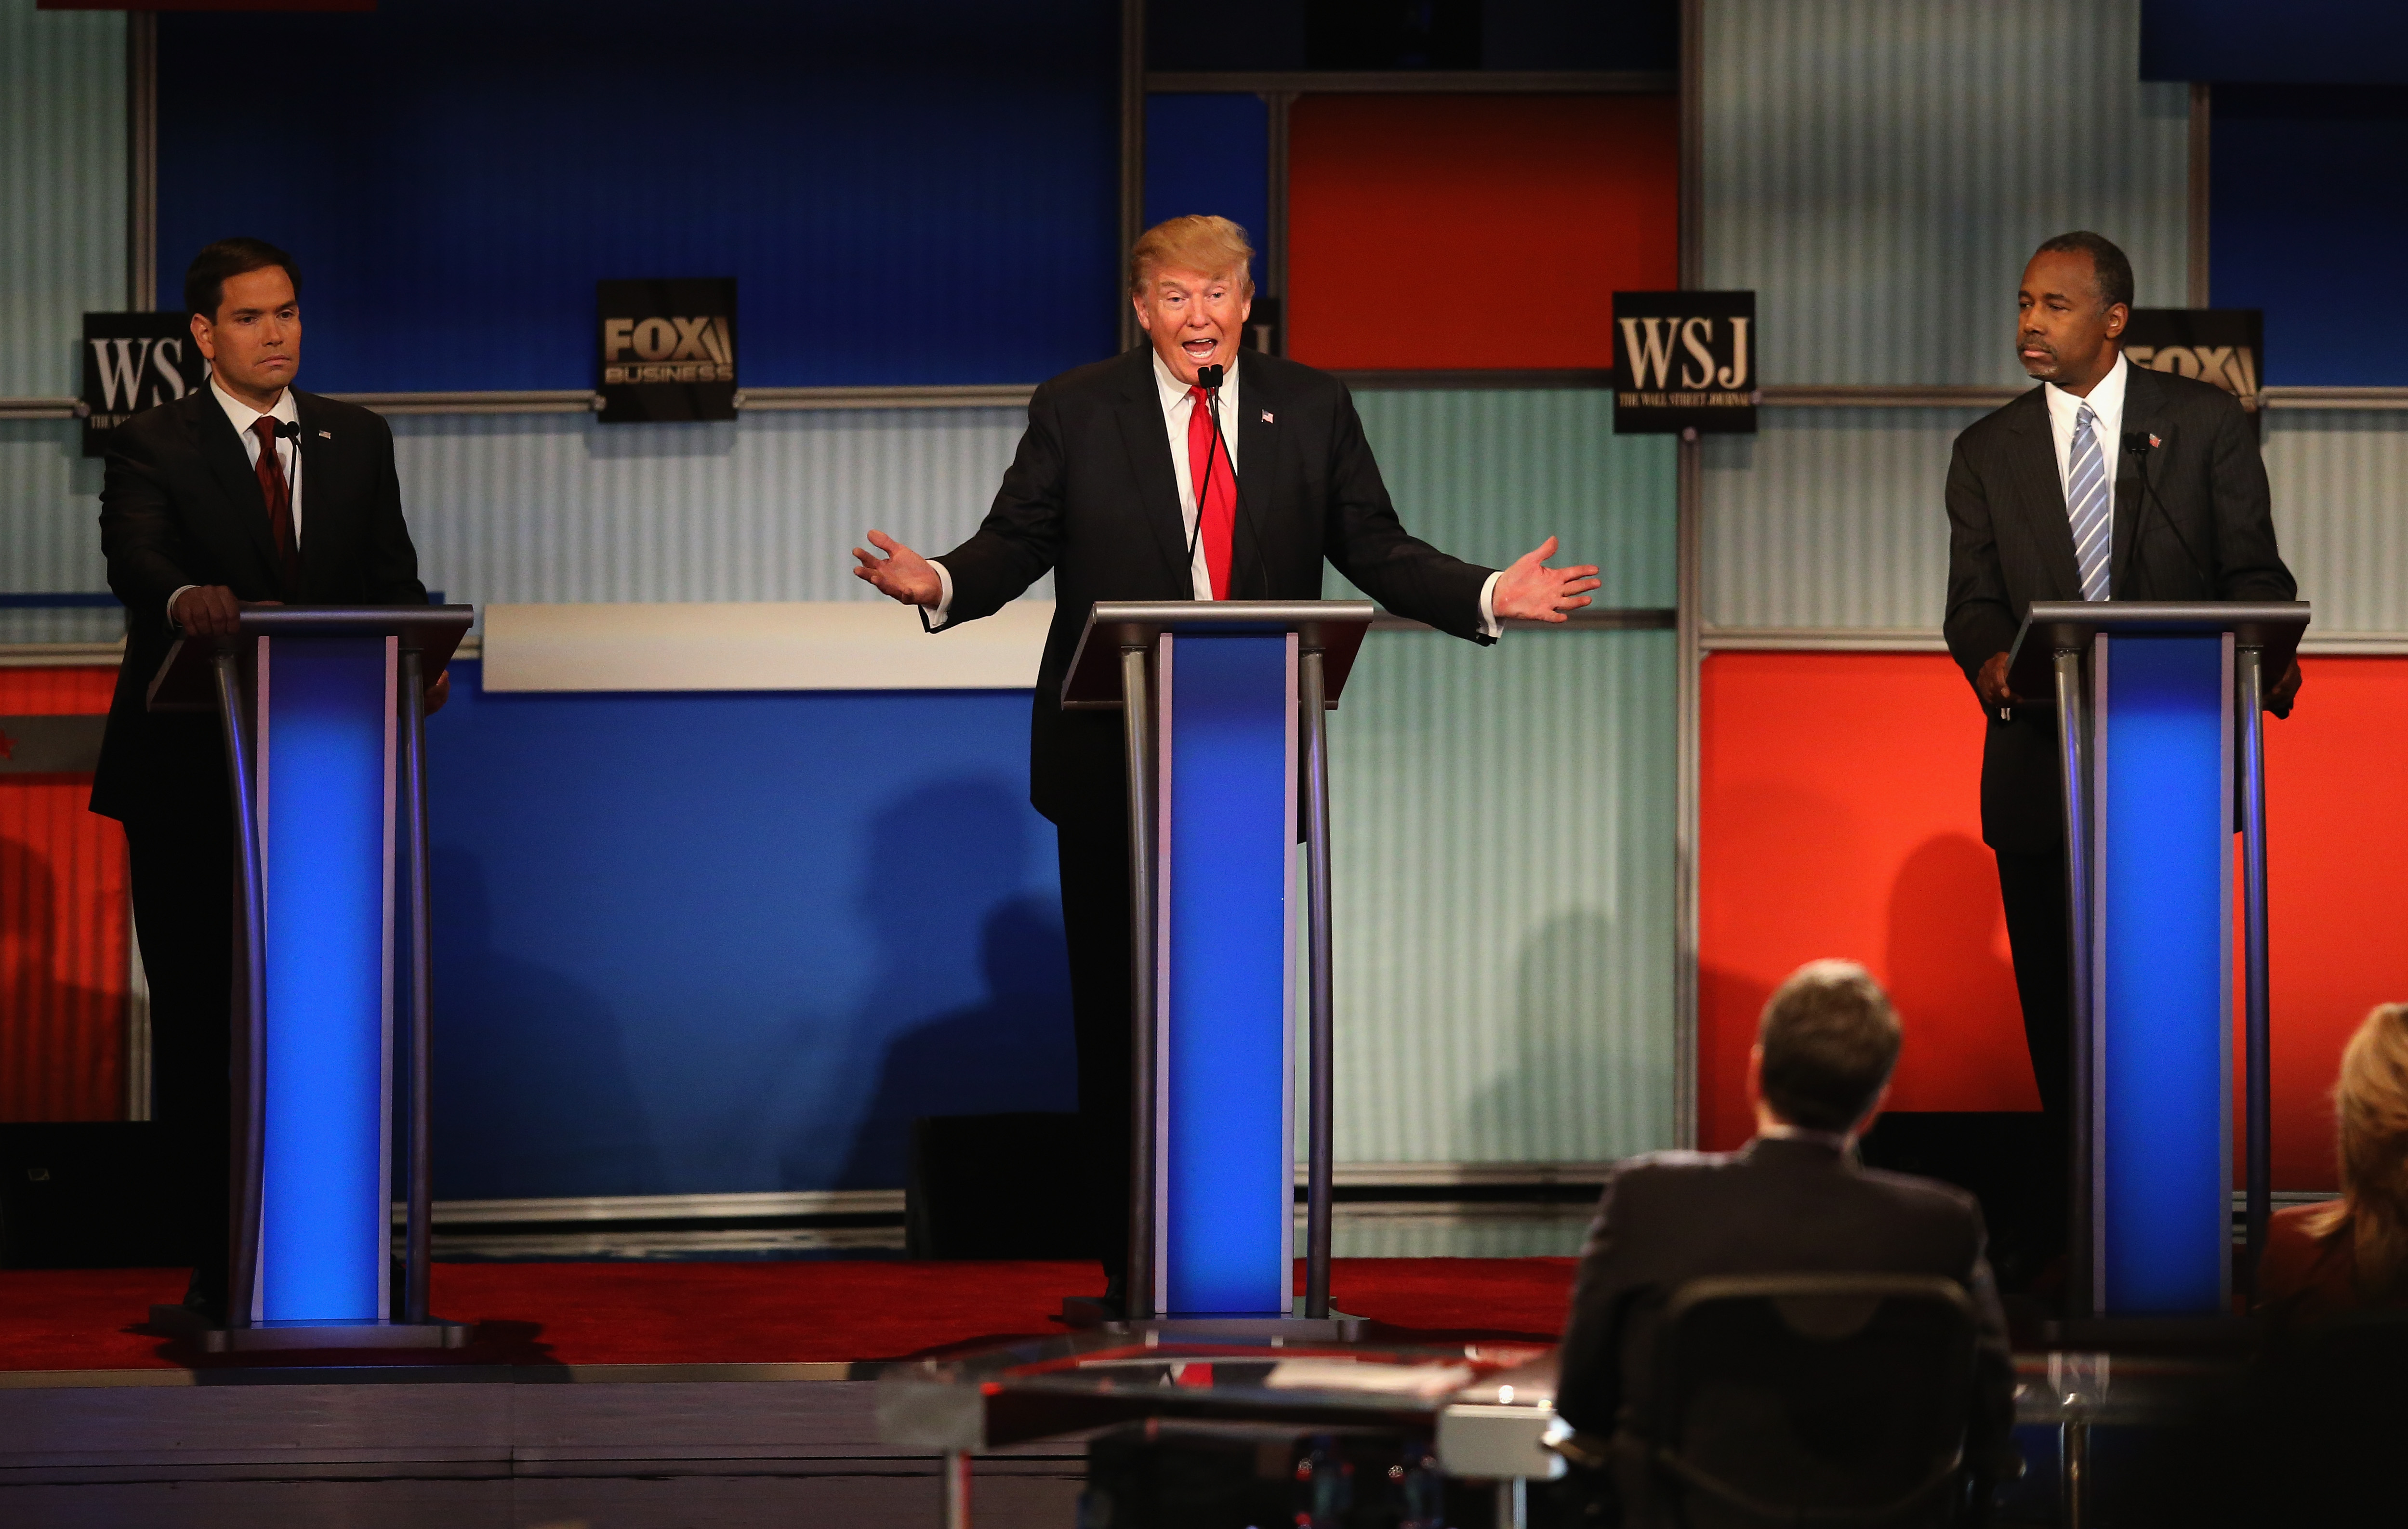 Presidential candidate Donald Trump (C) speaks while Sen. Marco Rubio (L) (R-FL), and Ben Carson look on during the Republican Presidential Debate sponsored by Fox Business and the Wall Street Journal in Milwaukee, Wisc., on Nov. 10, 2015.